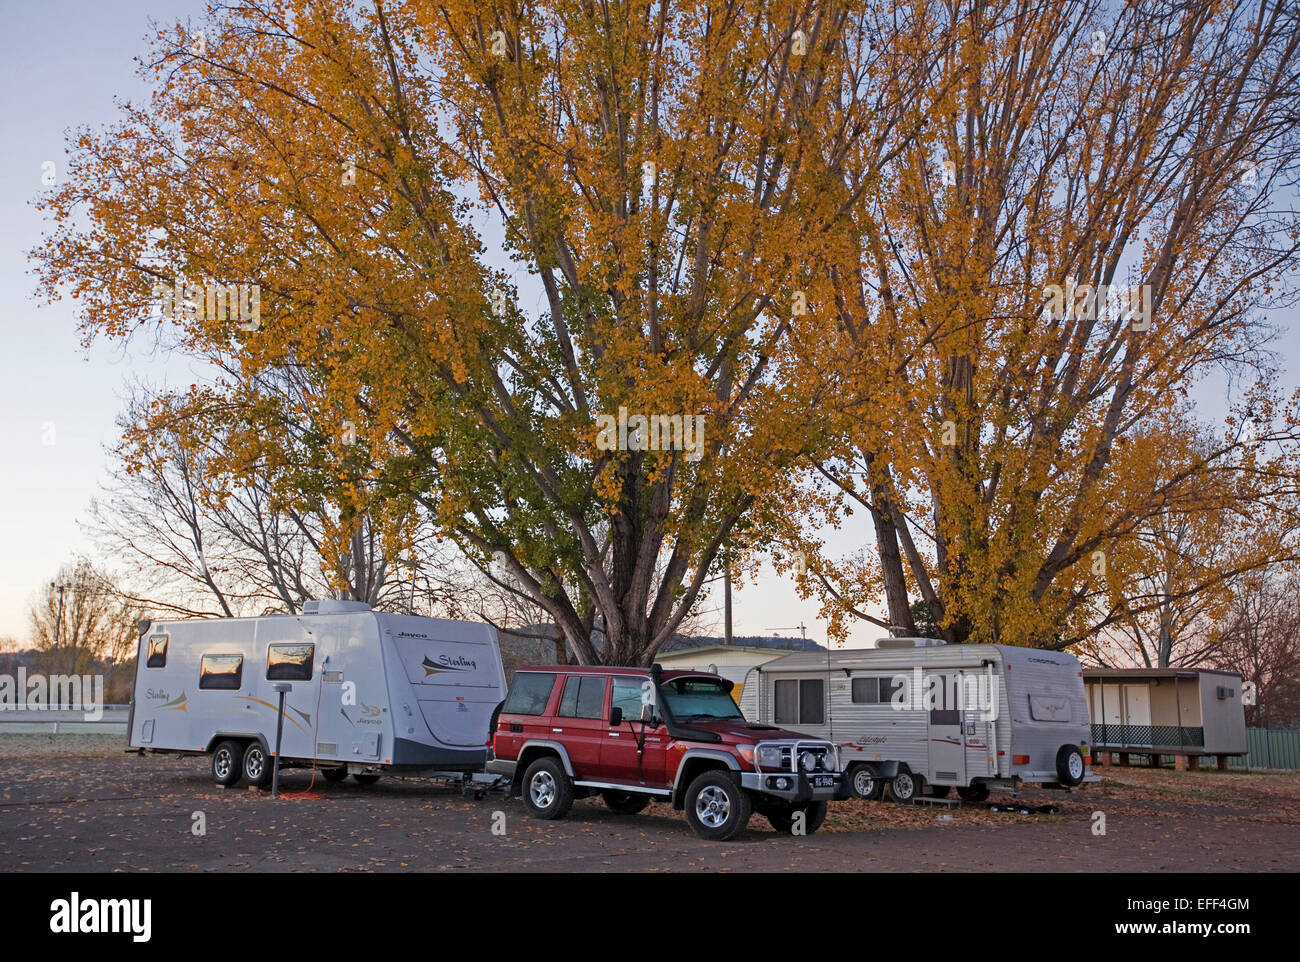 Caravans and red SUV / four wheel drive vehicle beside large trees with masses of golden autumn leaves in caravan - Stock Image